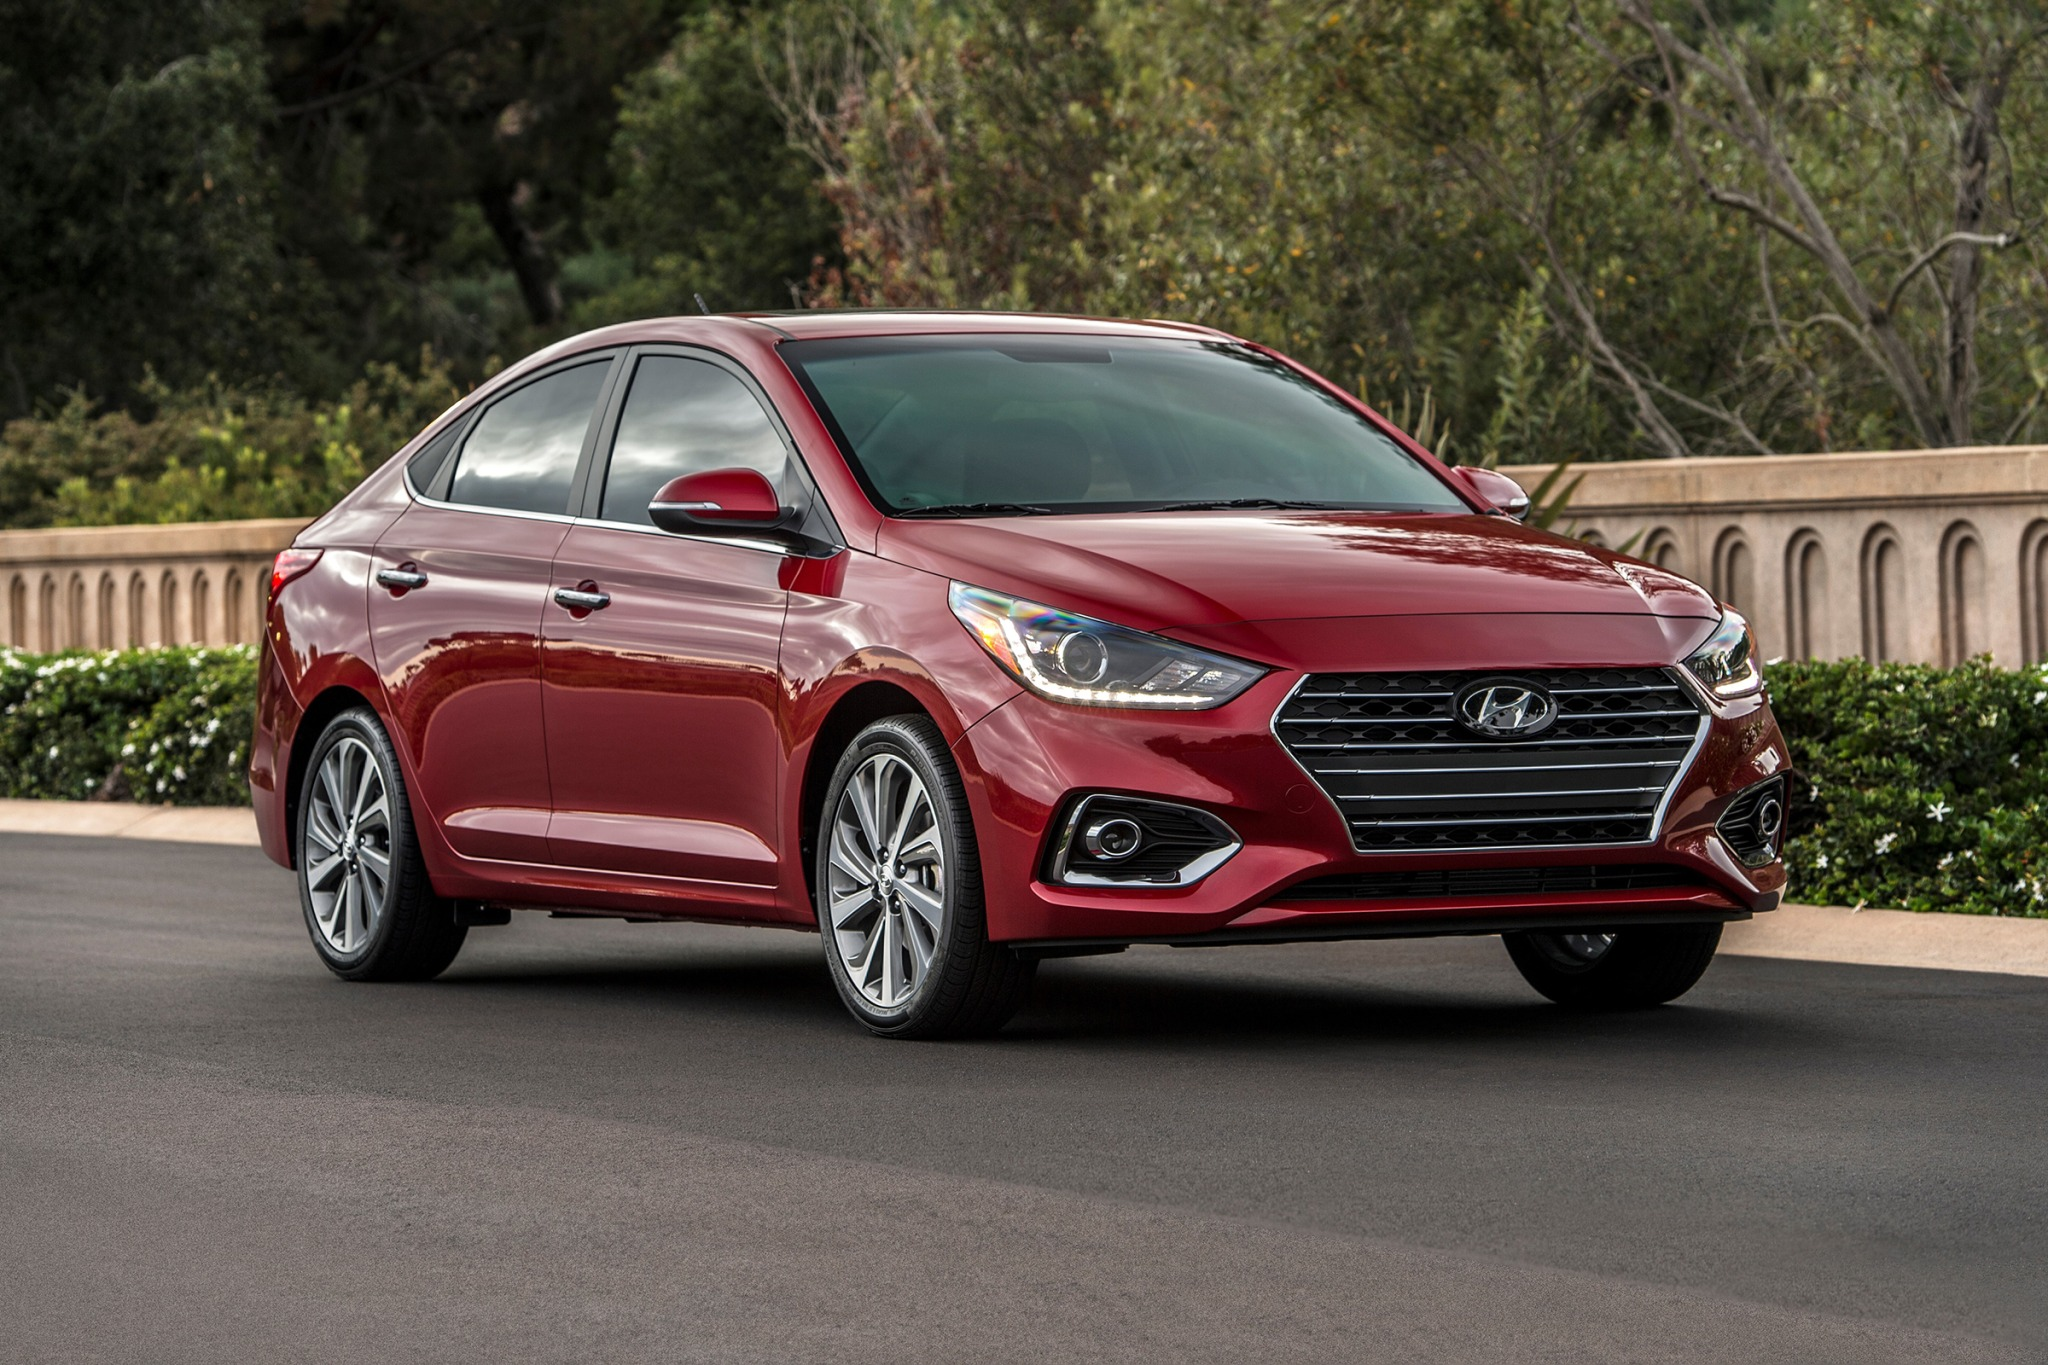 2018 hyundai accent sedan limited fq oem 1 2048